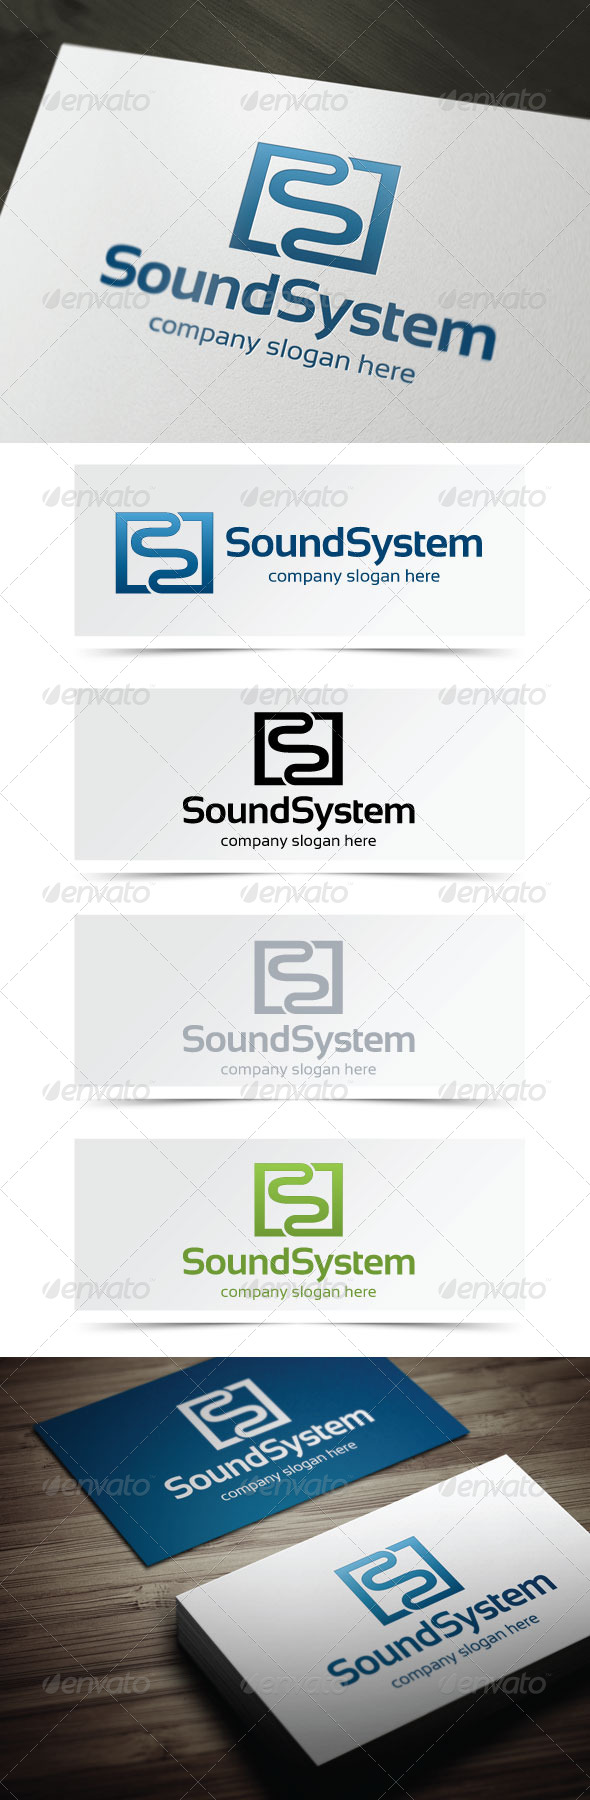 GraphicRiver Sound System 4995294